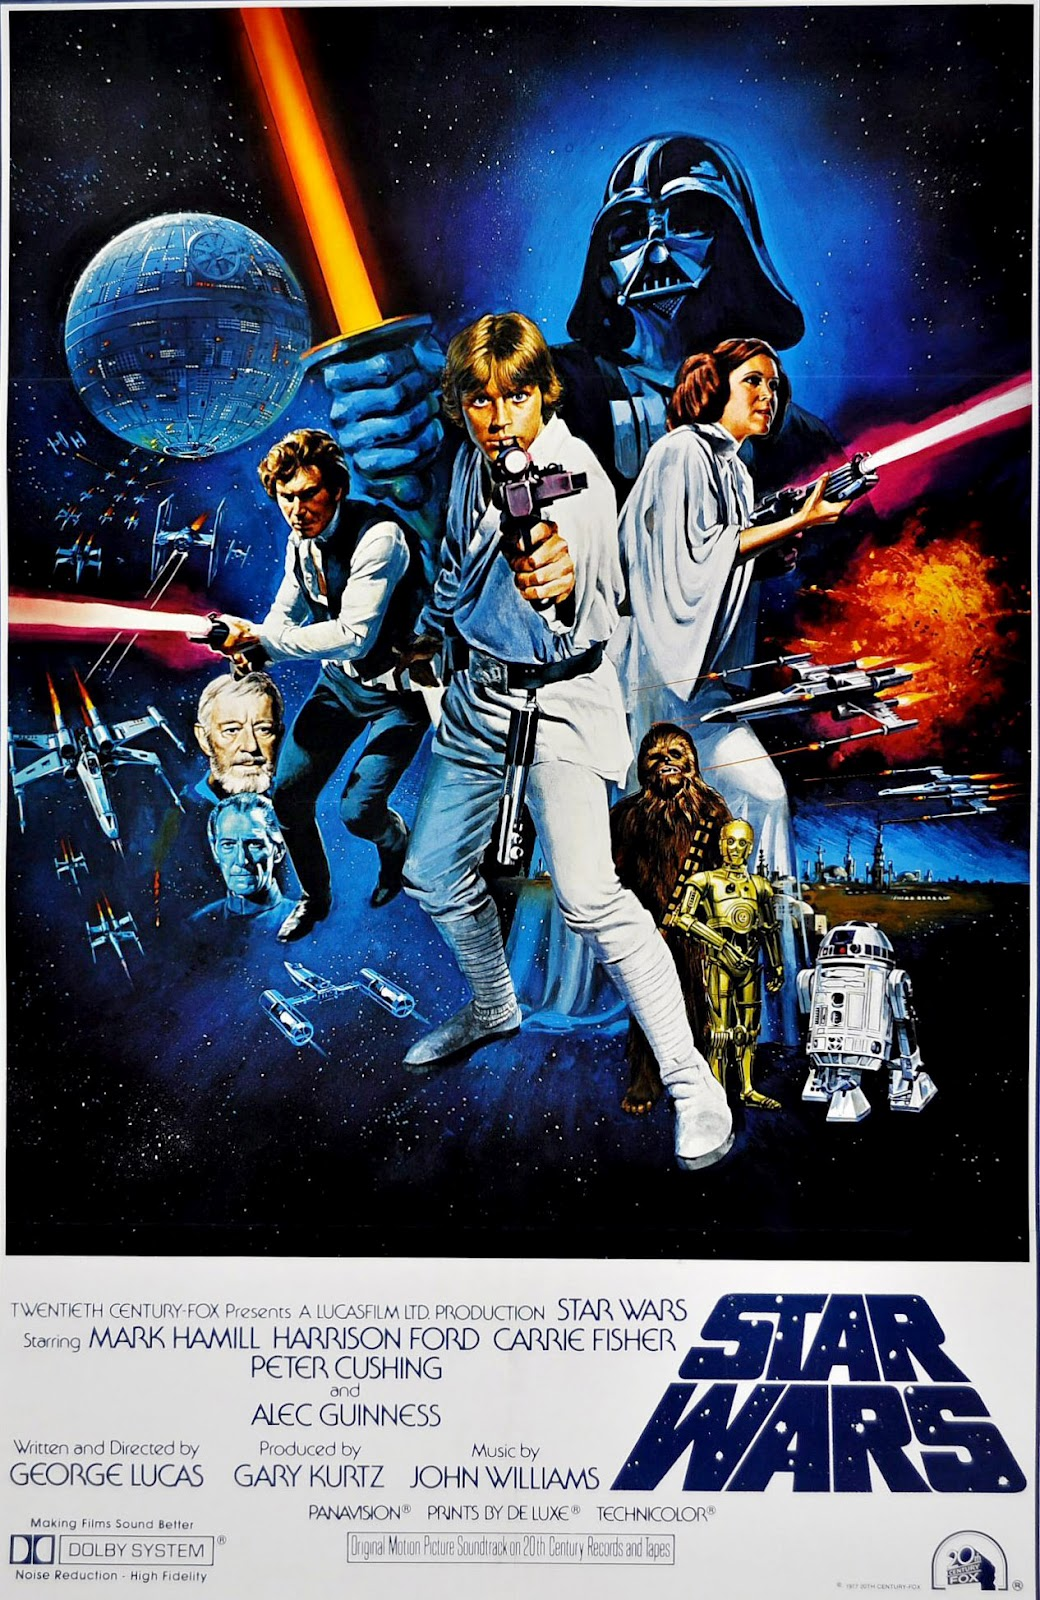 Tom Chantrell star wars poster